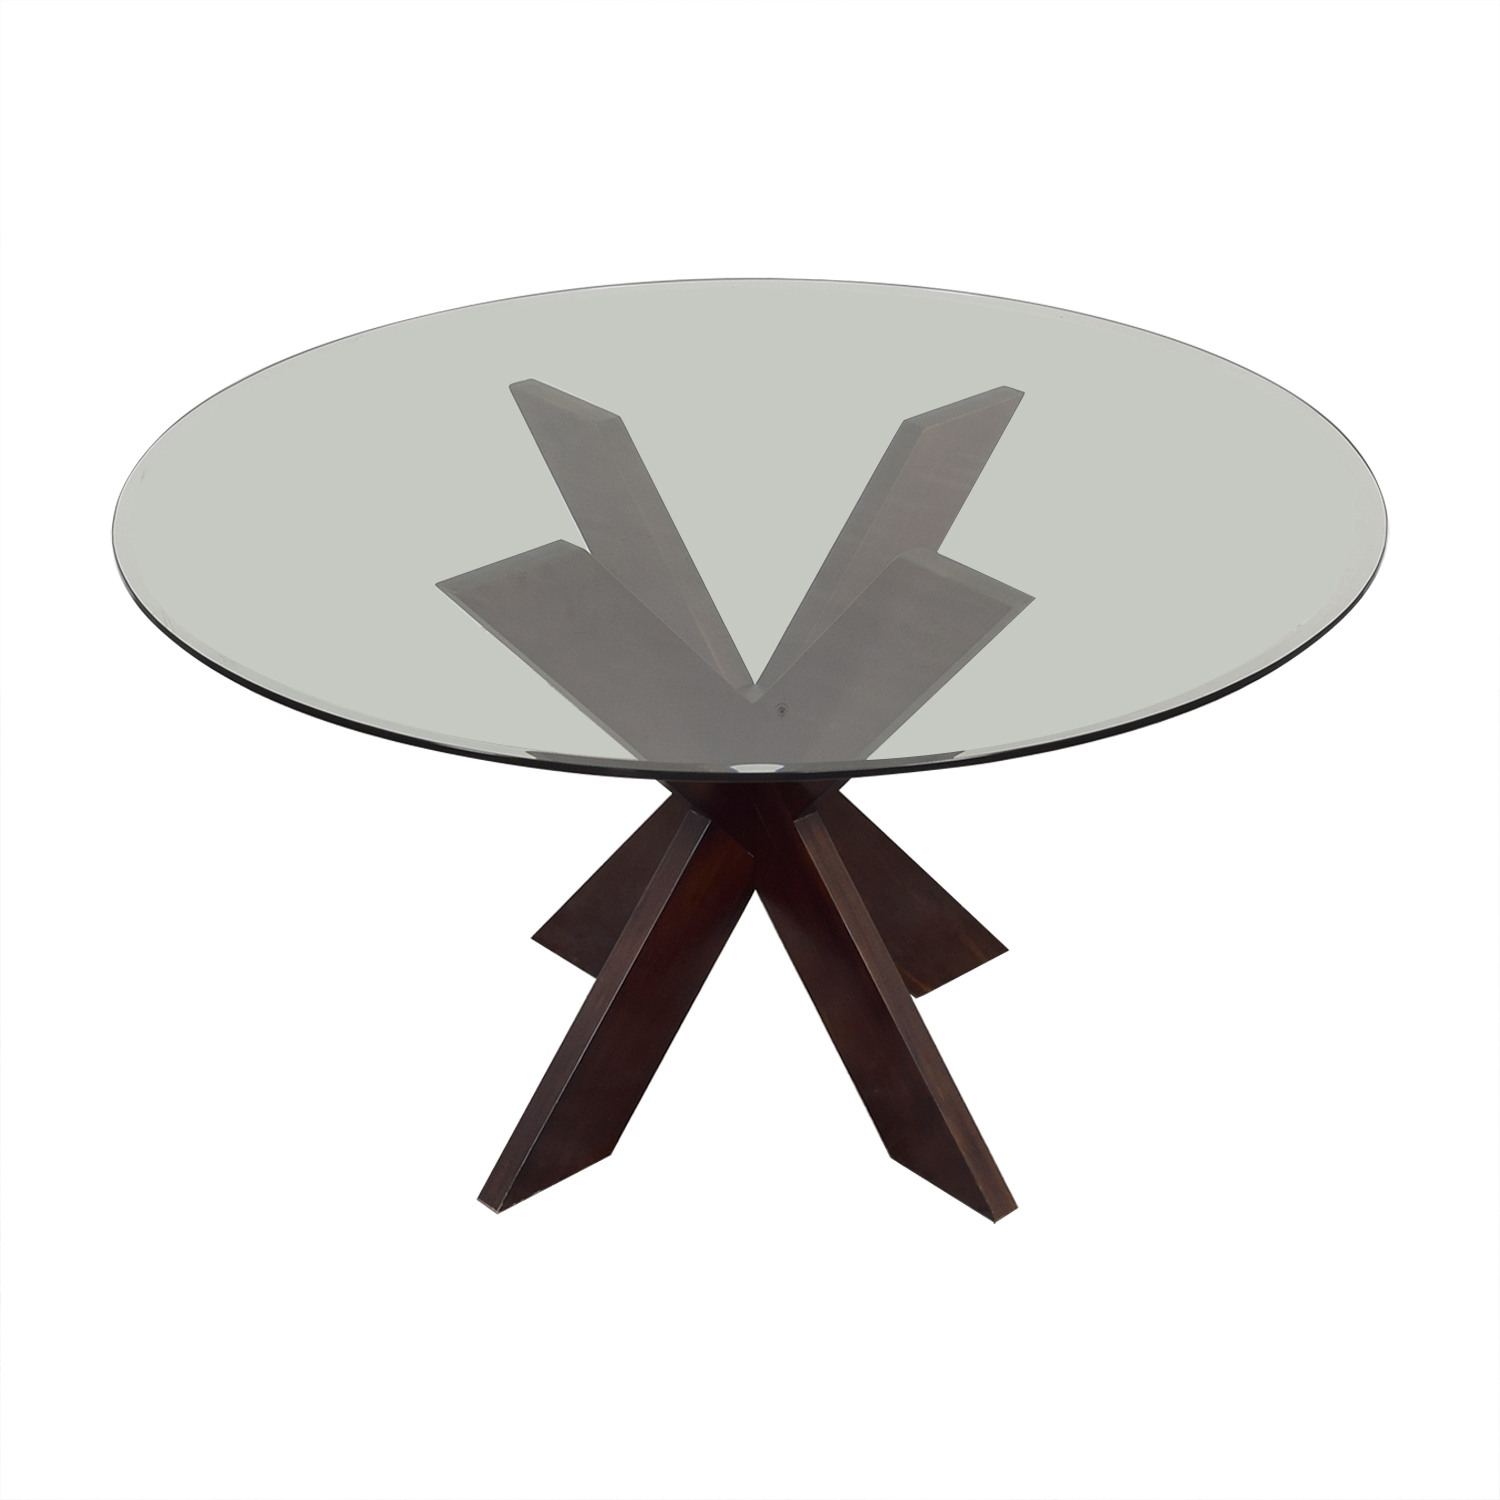 shop Pier 1 X-Base Dining Table with Glass Top Pier 1 Dinner Tables